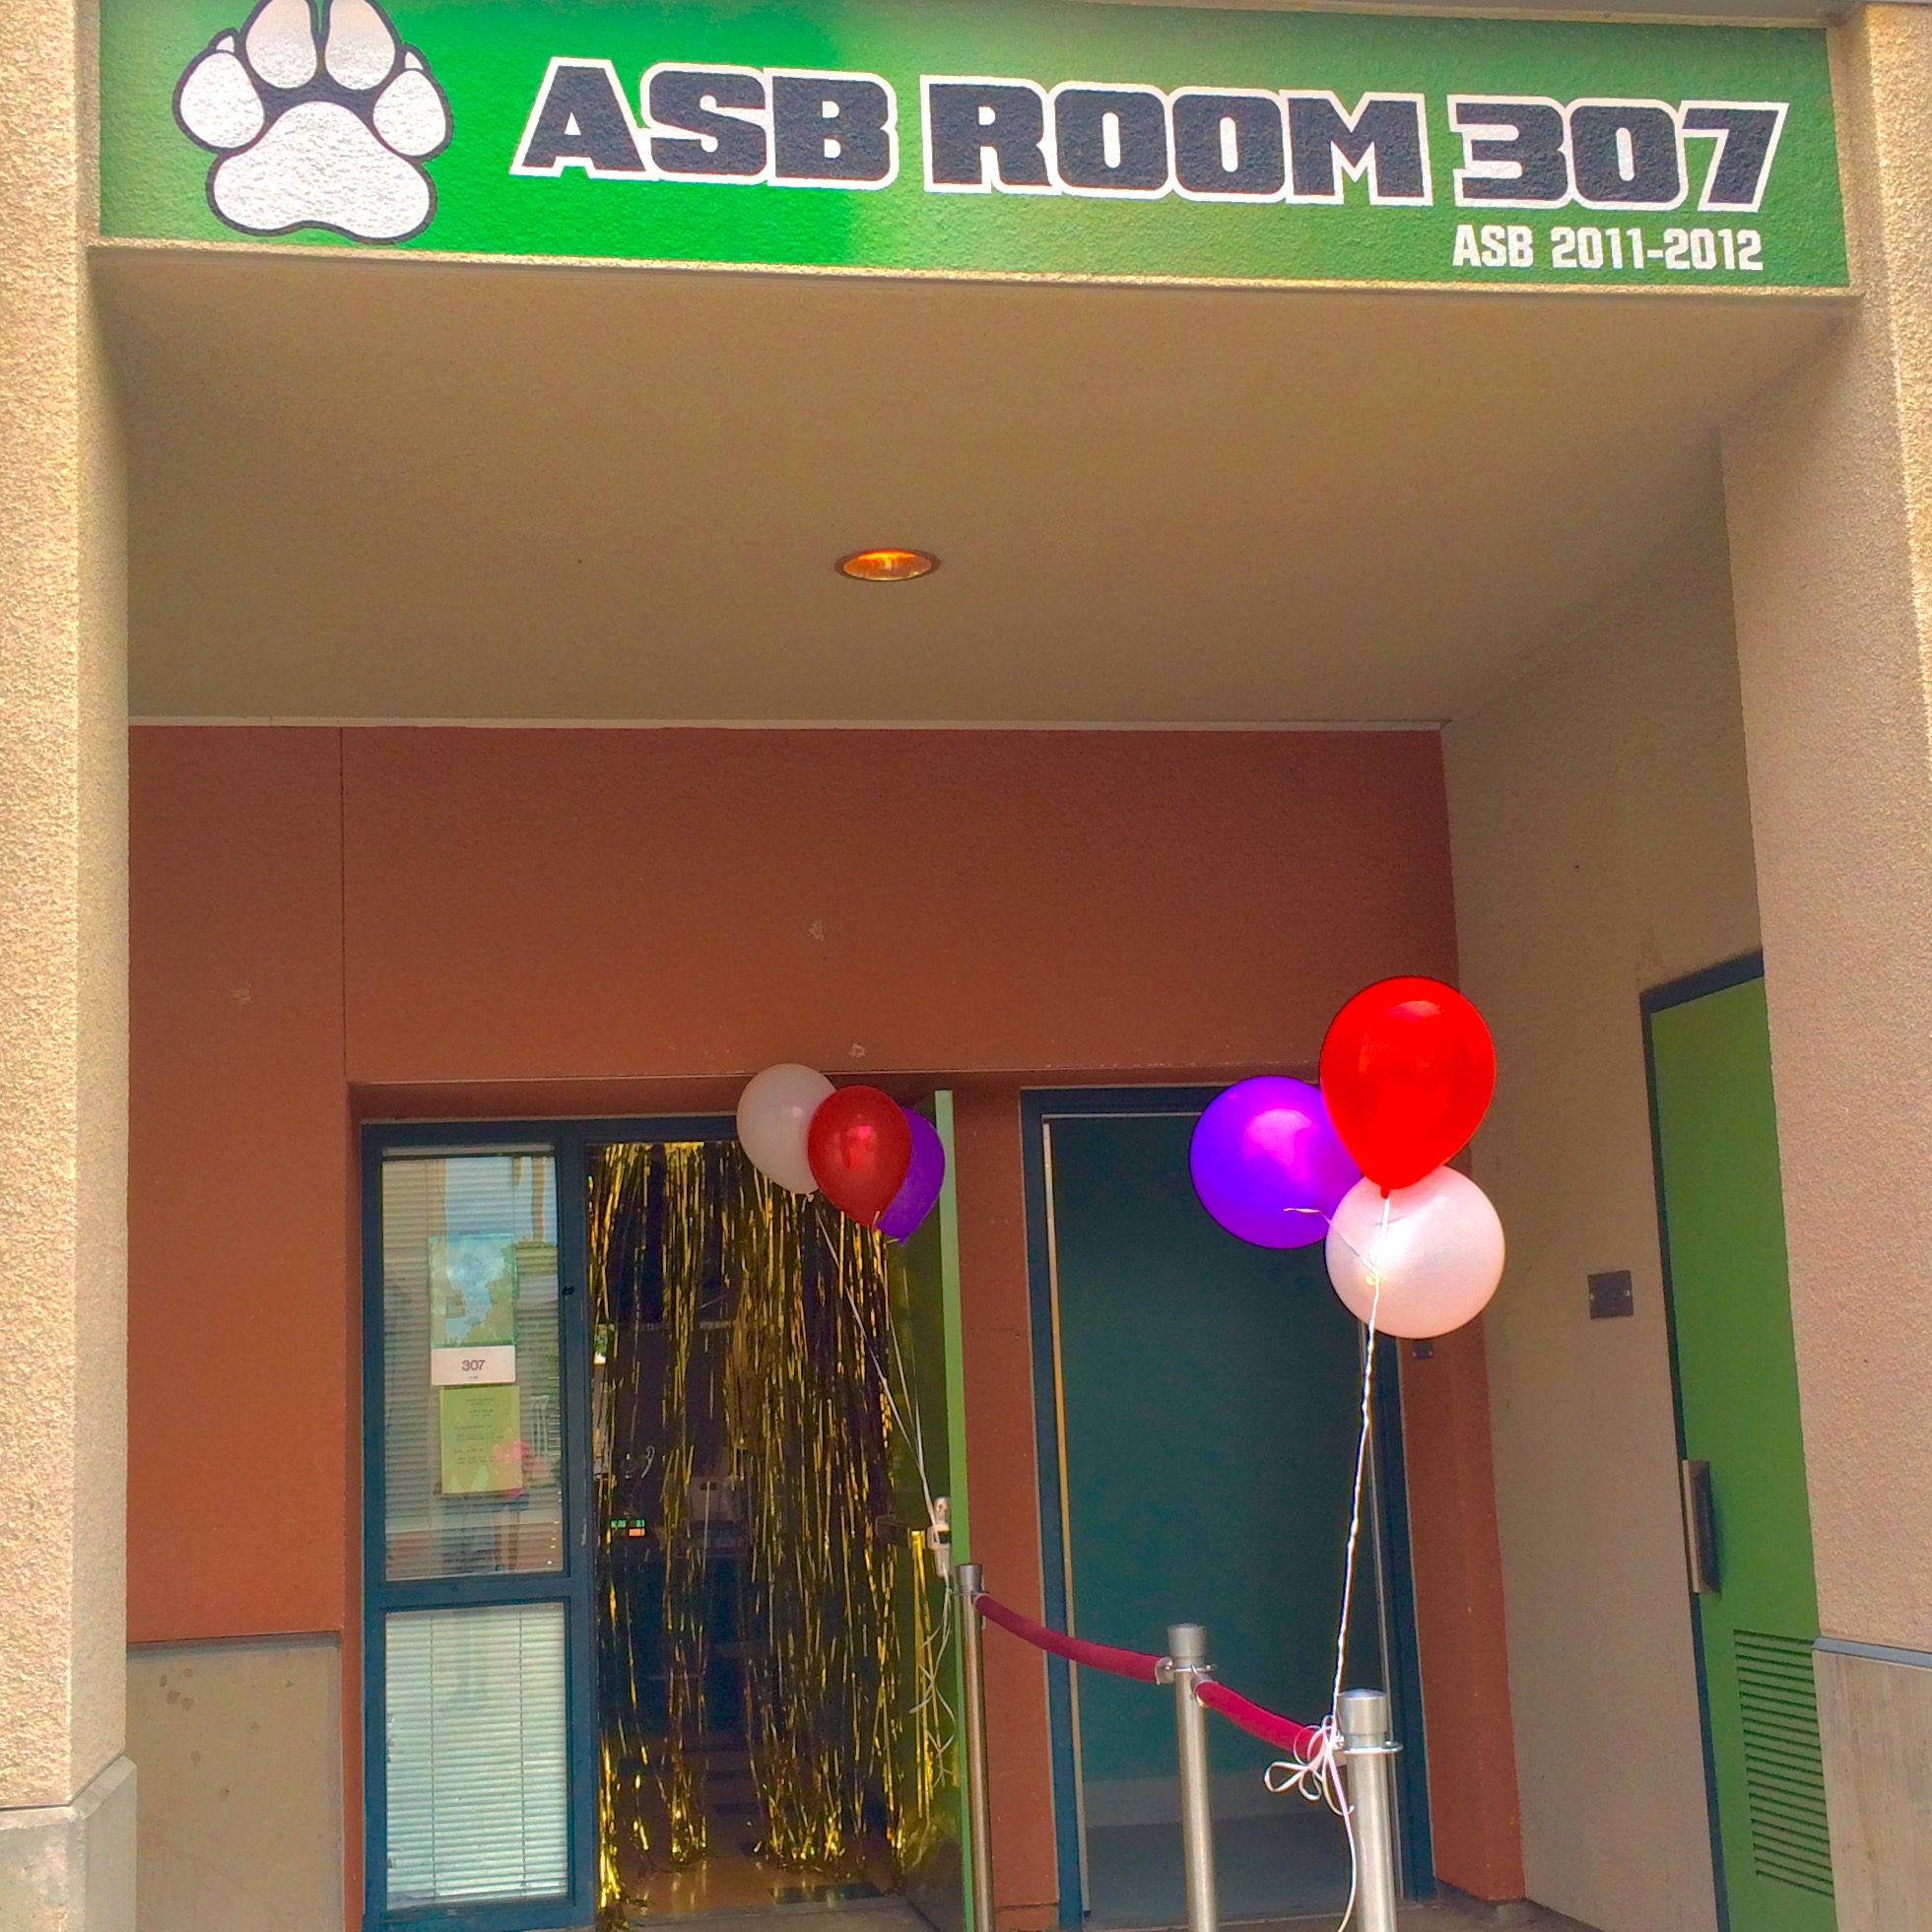 ASB Room 307